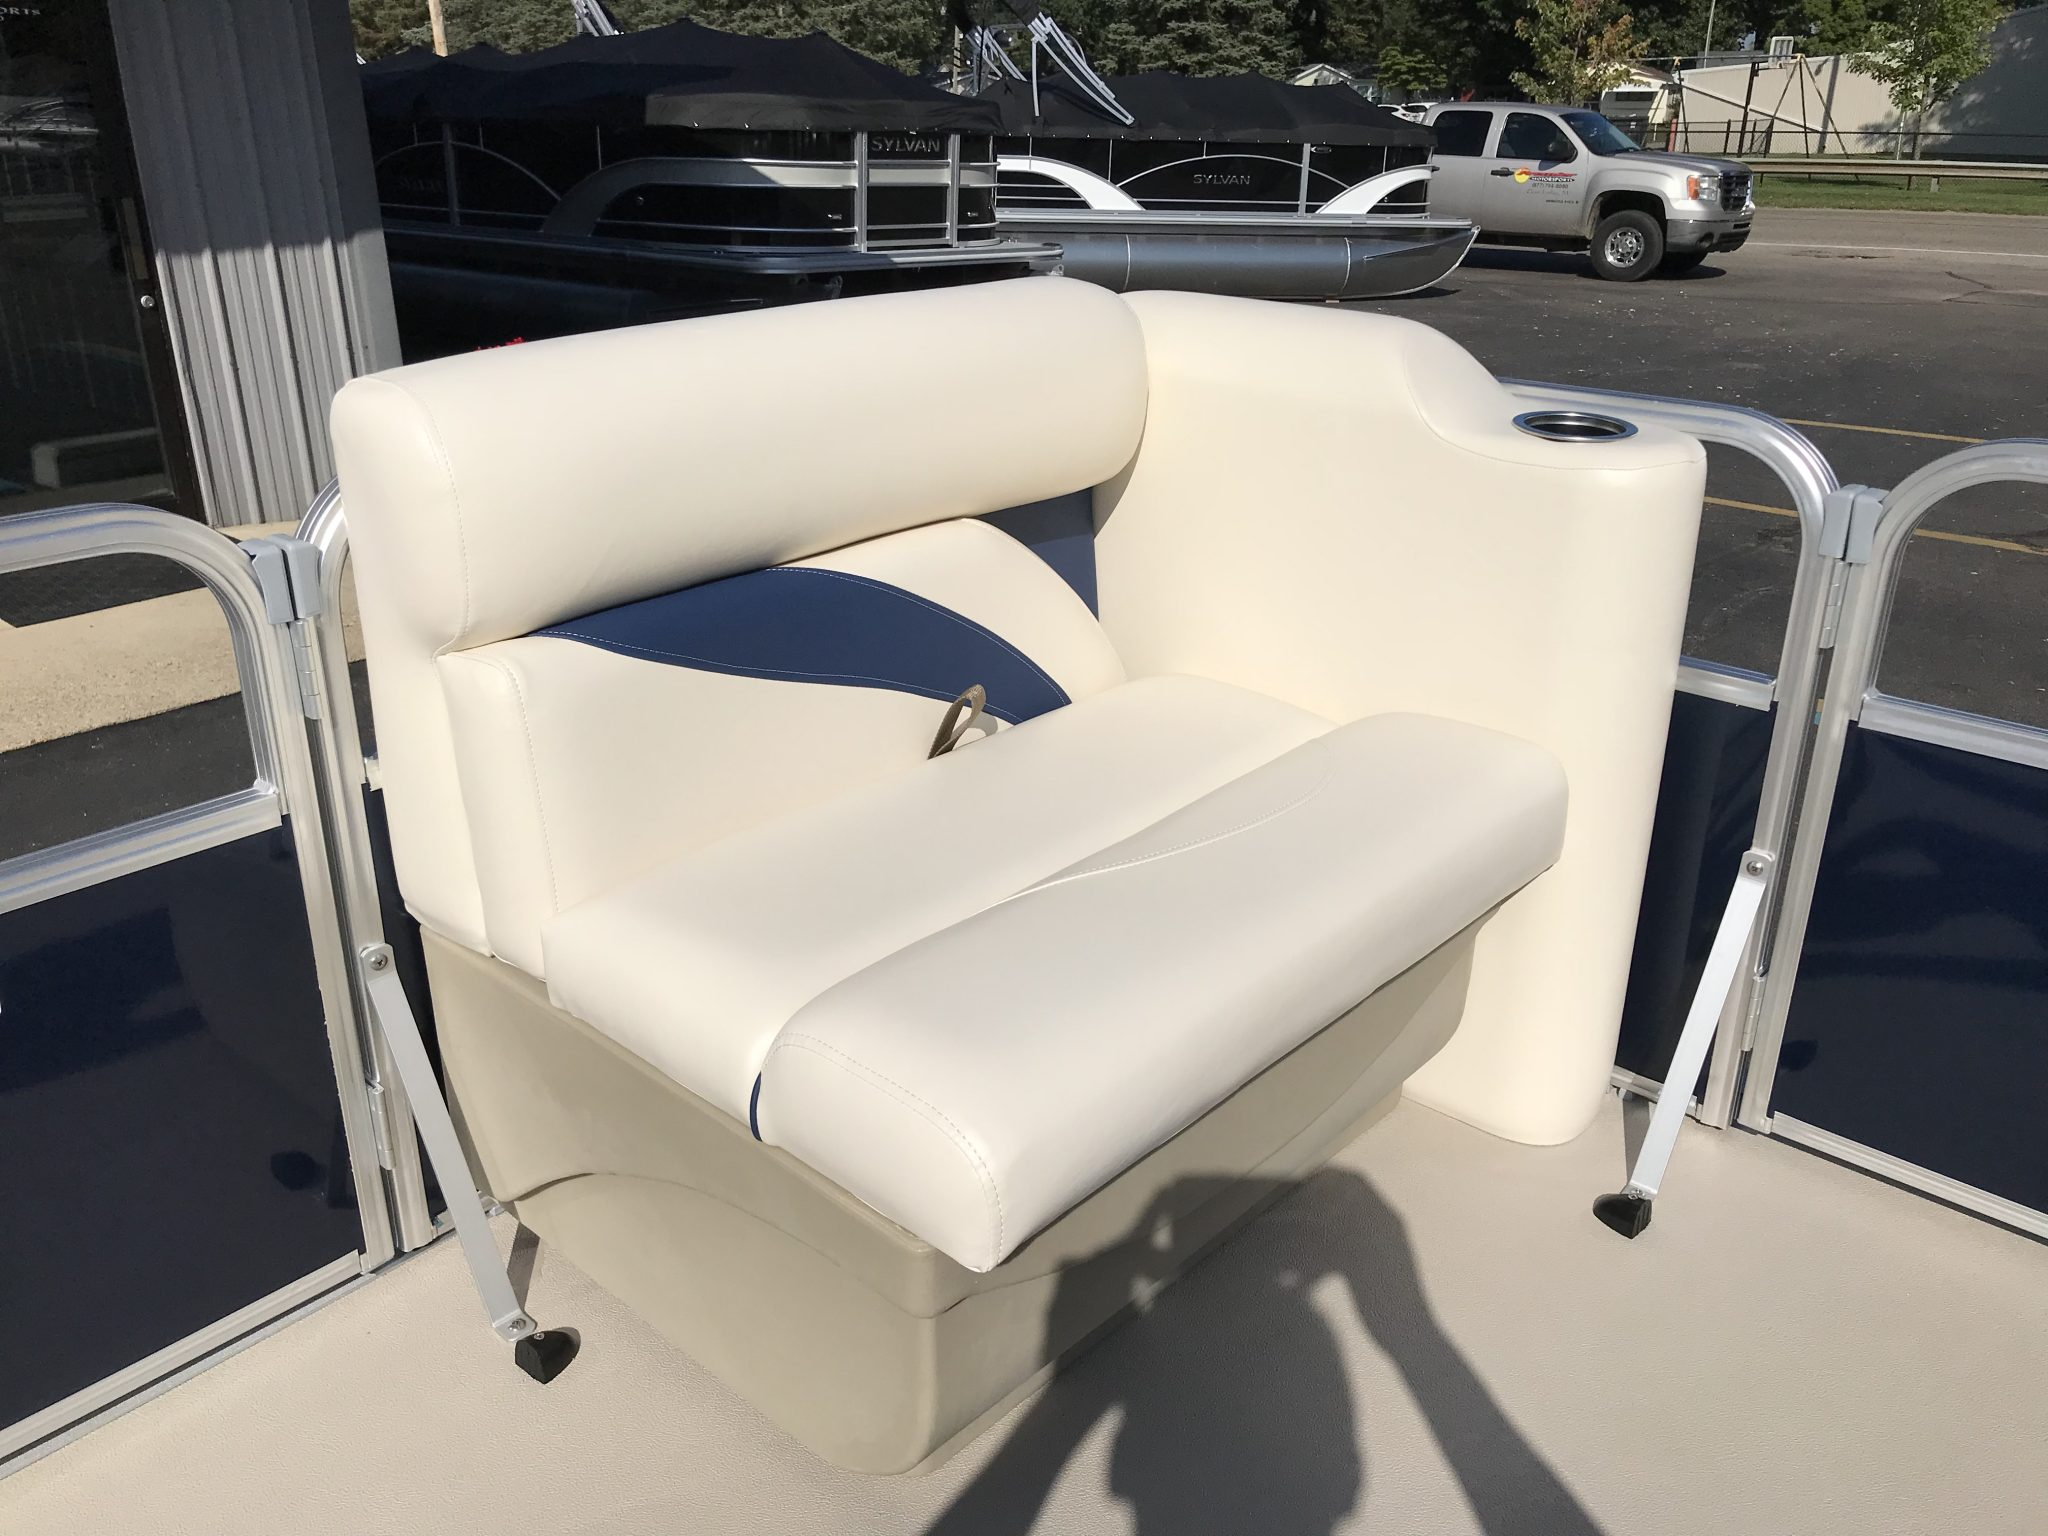 2019 SunChaser 816 Cruise Interior Bow Seating 1